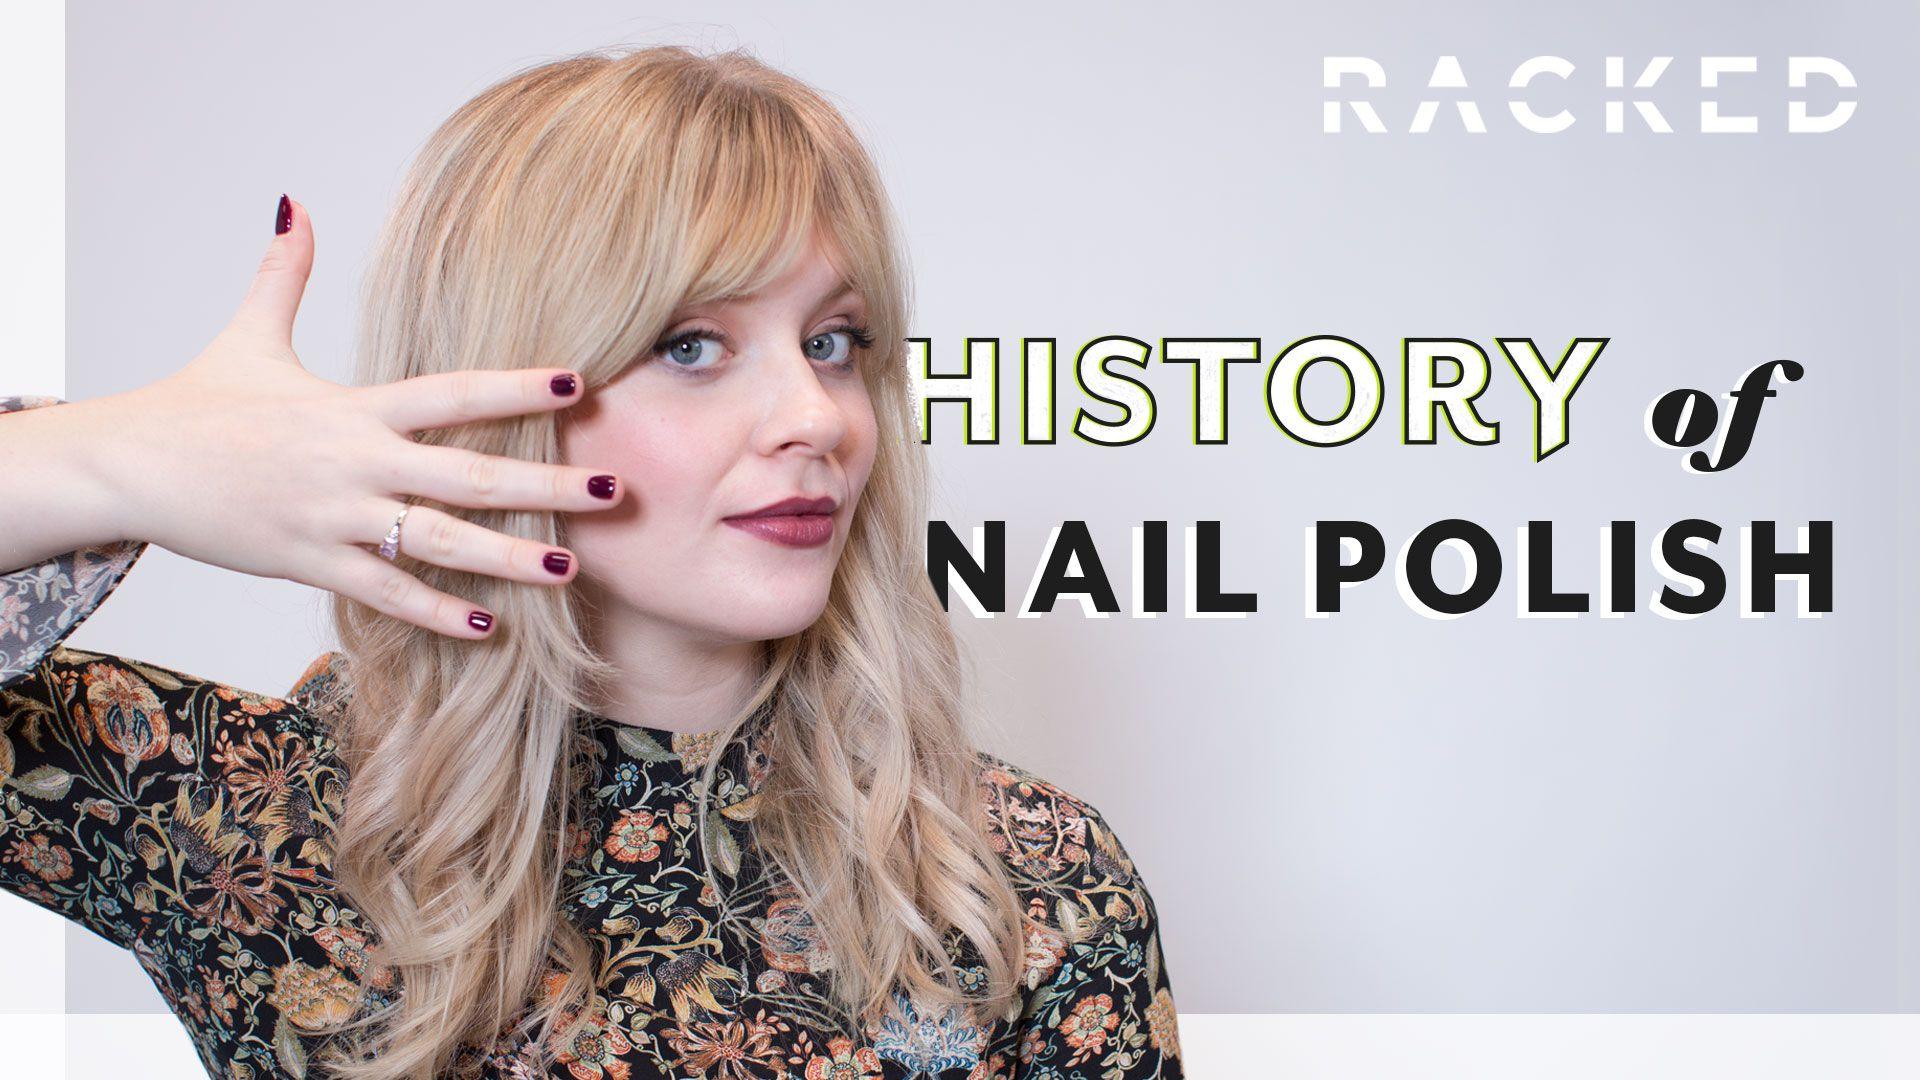 The History of Nail Polish Stretches Back 5,000 Years - Racked